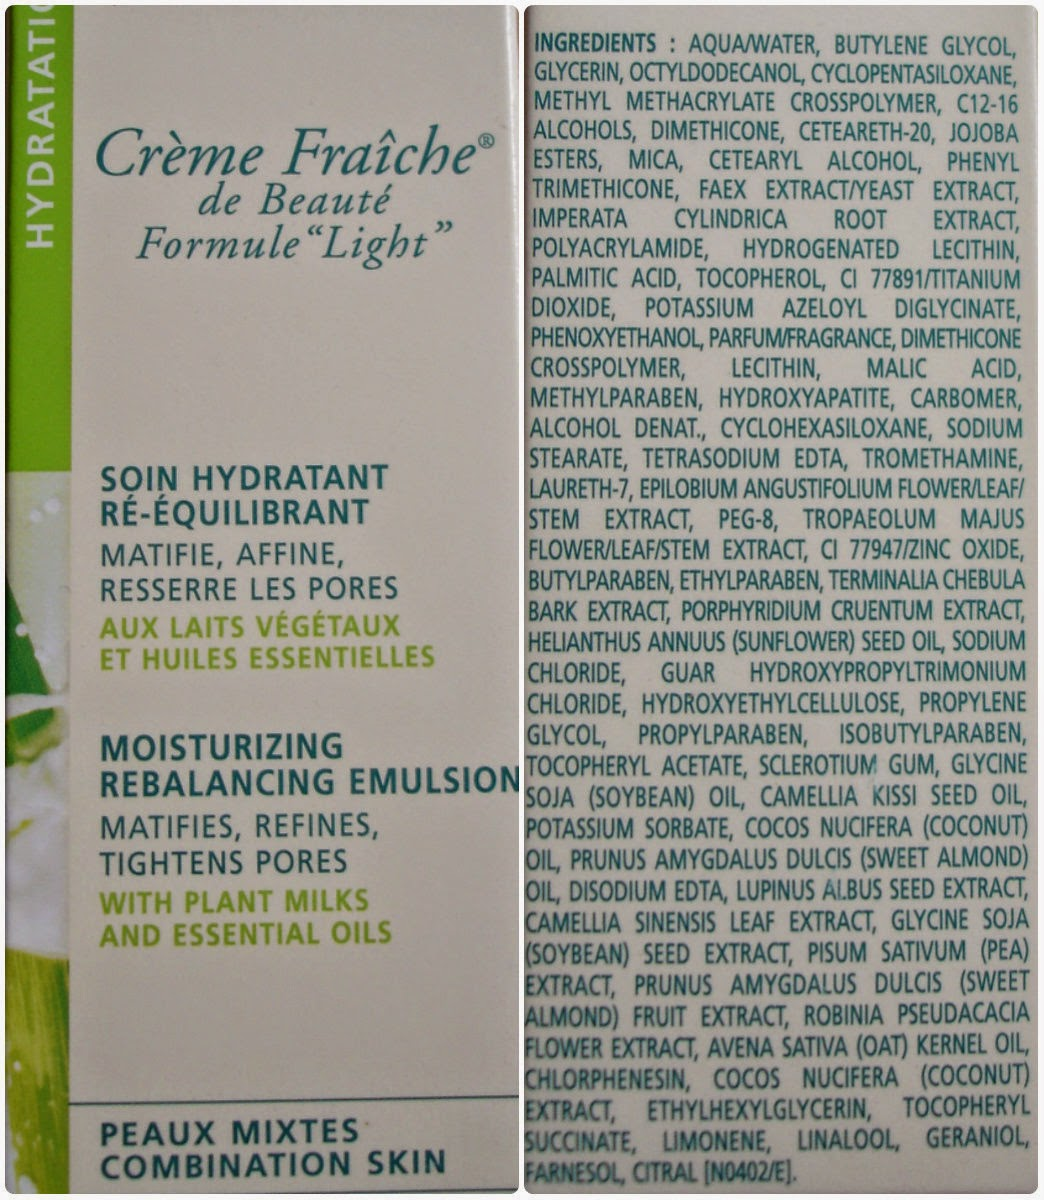 Nuxe Creme Fraiche de Beaute Formule Light состав